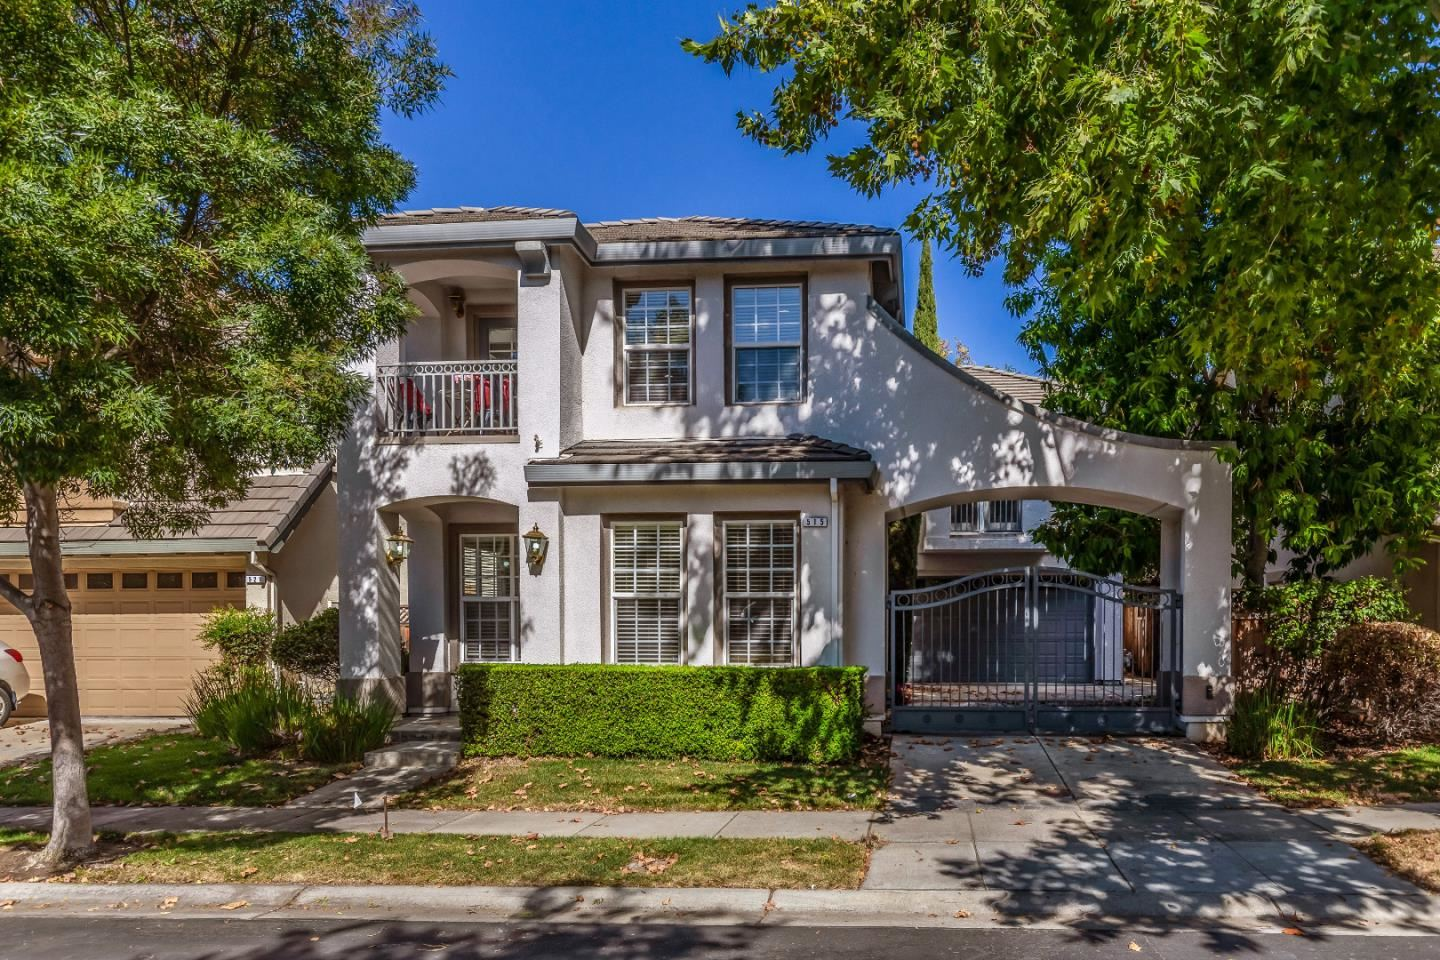 Photo for 515 CHERRY BLOSSOM Lane, CAMPBELL, CA 95008 (MLS # ML81866169)